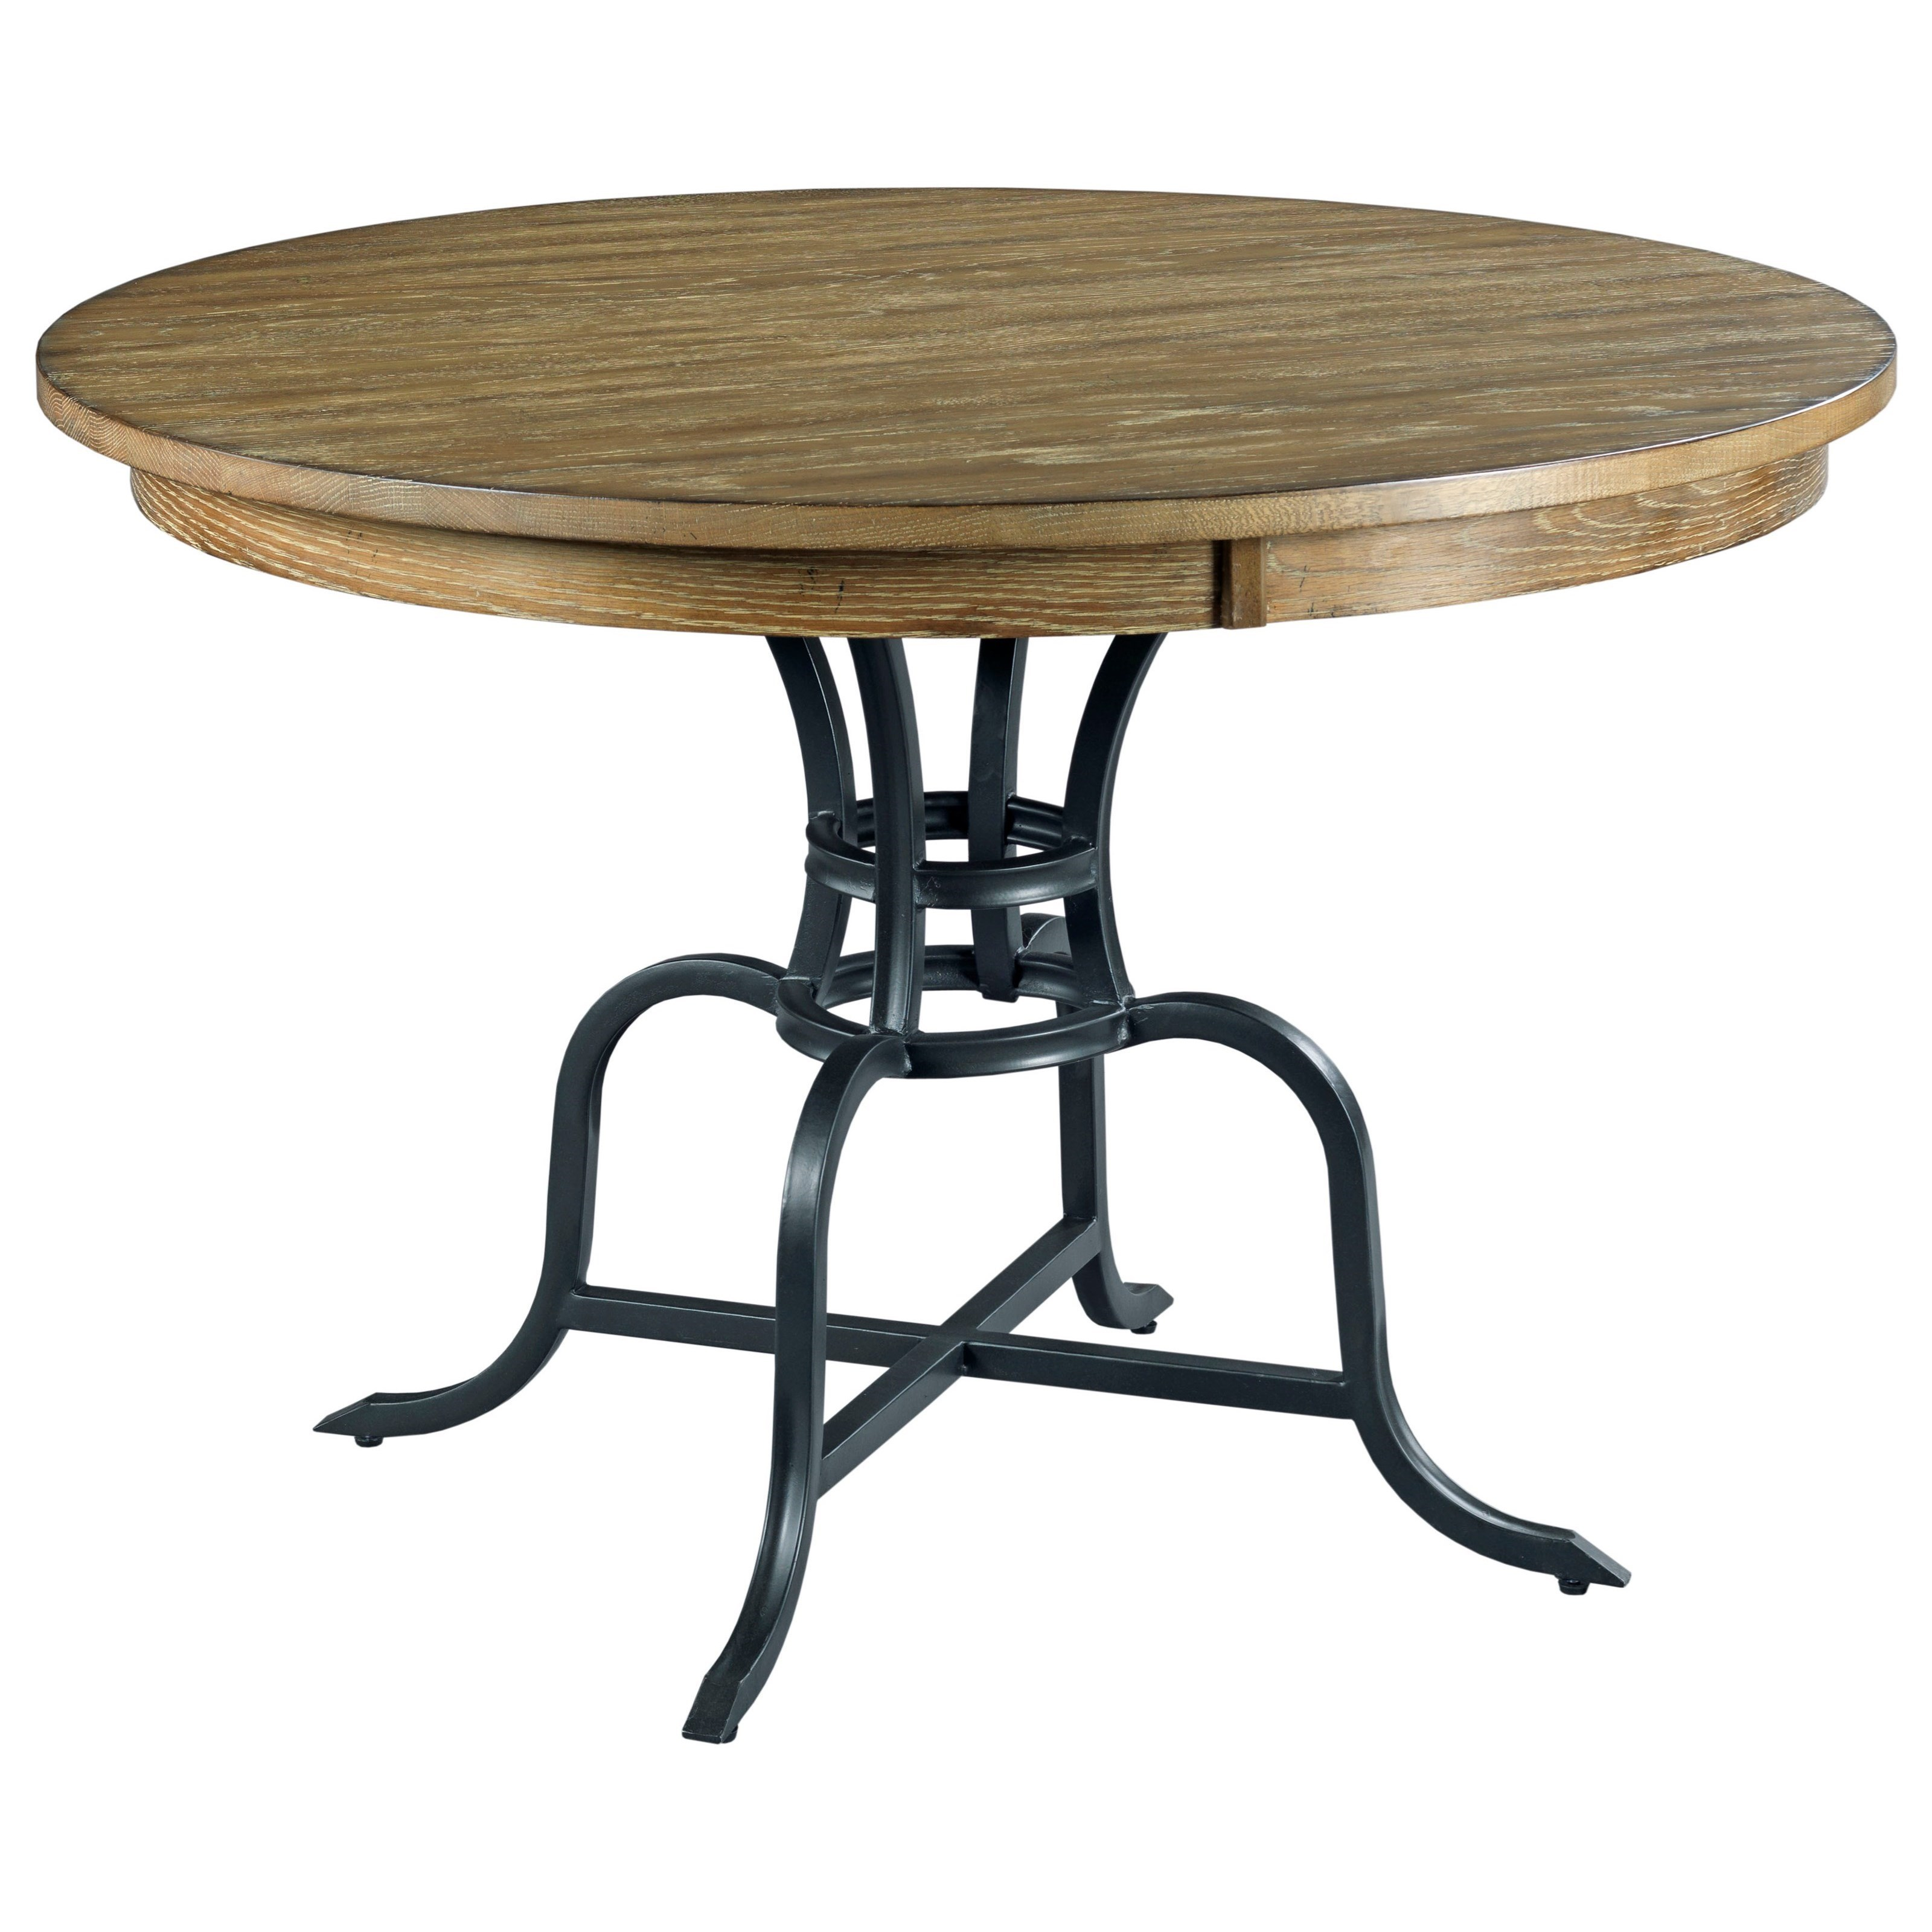 Kincaid Furniture The Nook 44quot Round Solid Wood Dining  : products2Fkincaidfurniture2Fcolor2Fthe20nook663 703p b1jpgscalebothampwidth500ampheight500ampfsharpen25ampdown from www.wayside-furniture.com size 500 x 500 jpeg 31kB